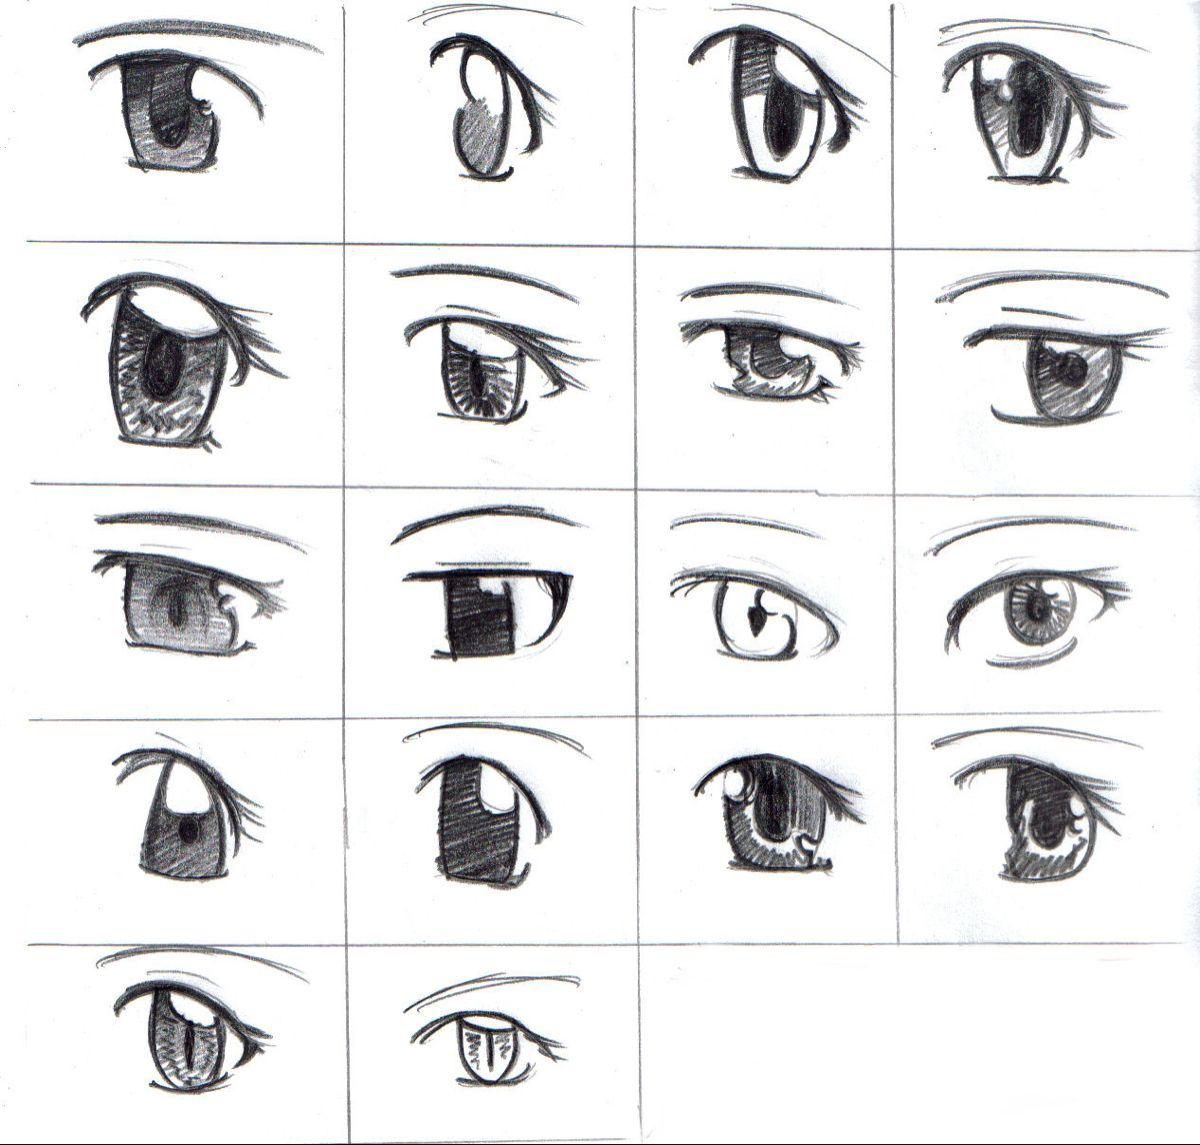 How To Draw Manga Anime Eyes Tutorial Easy Simple Beginner Steps Wow Sketch Drawing In 2020 Anime Eye Drawing Anime Eyes Easy Cartoon Drawings